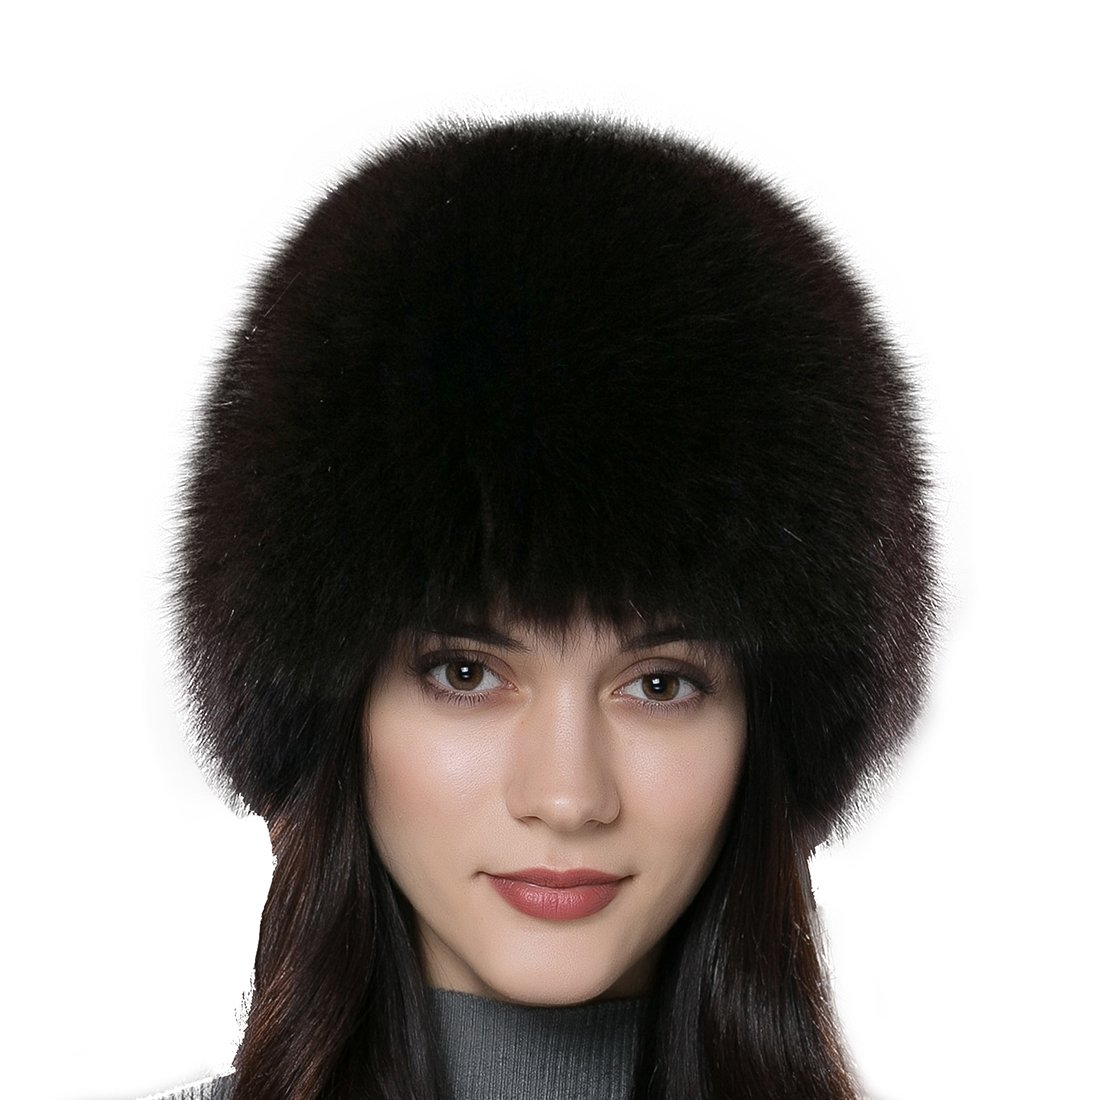 URSFUR Winter Knit Fur Wig Women's Real Fox Fur Hat Caps Multicolor